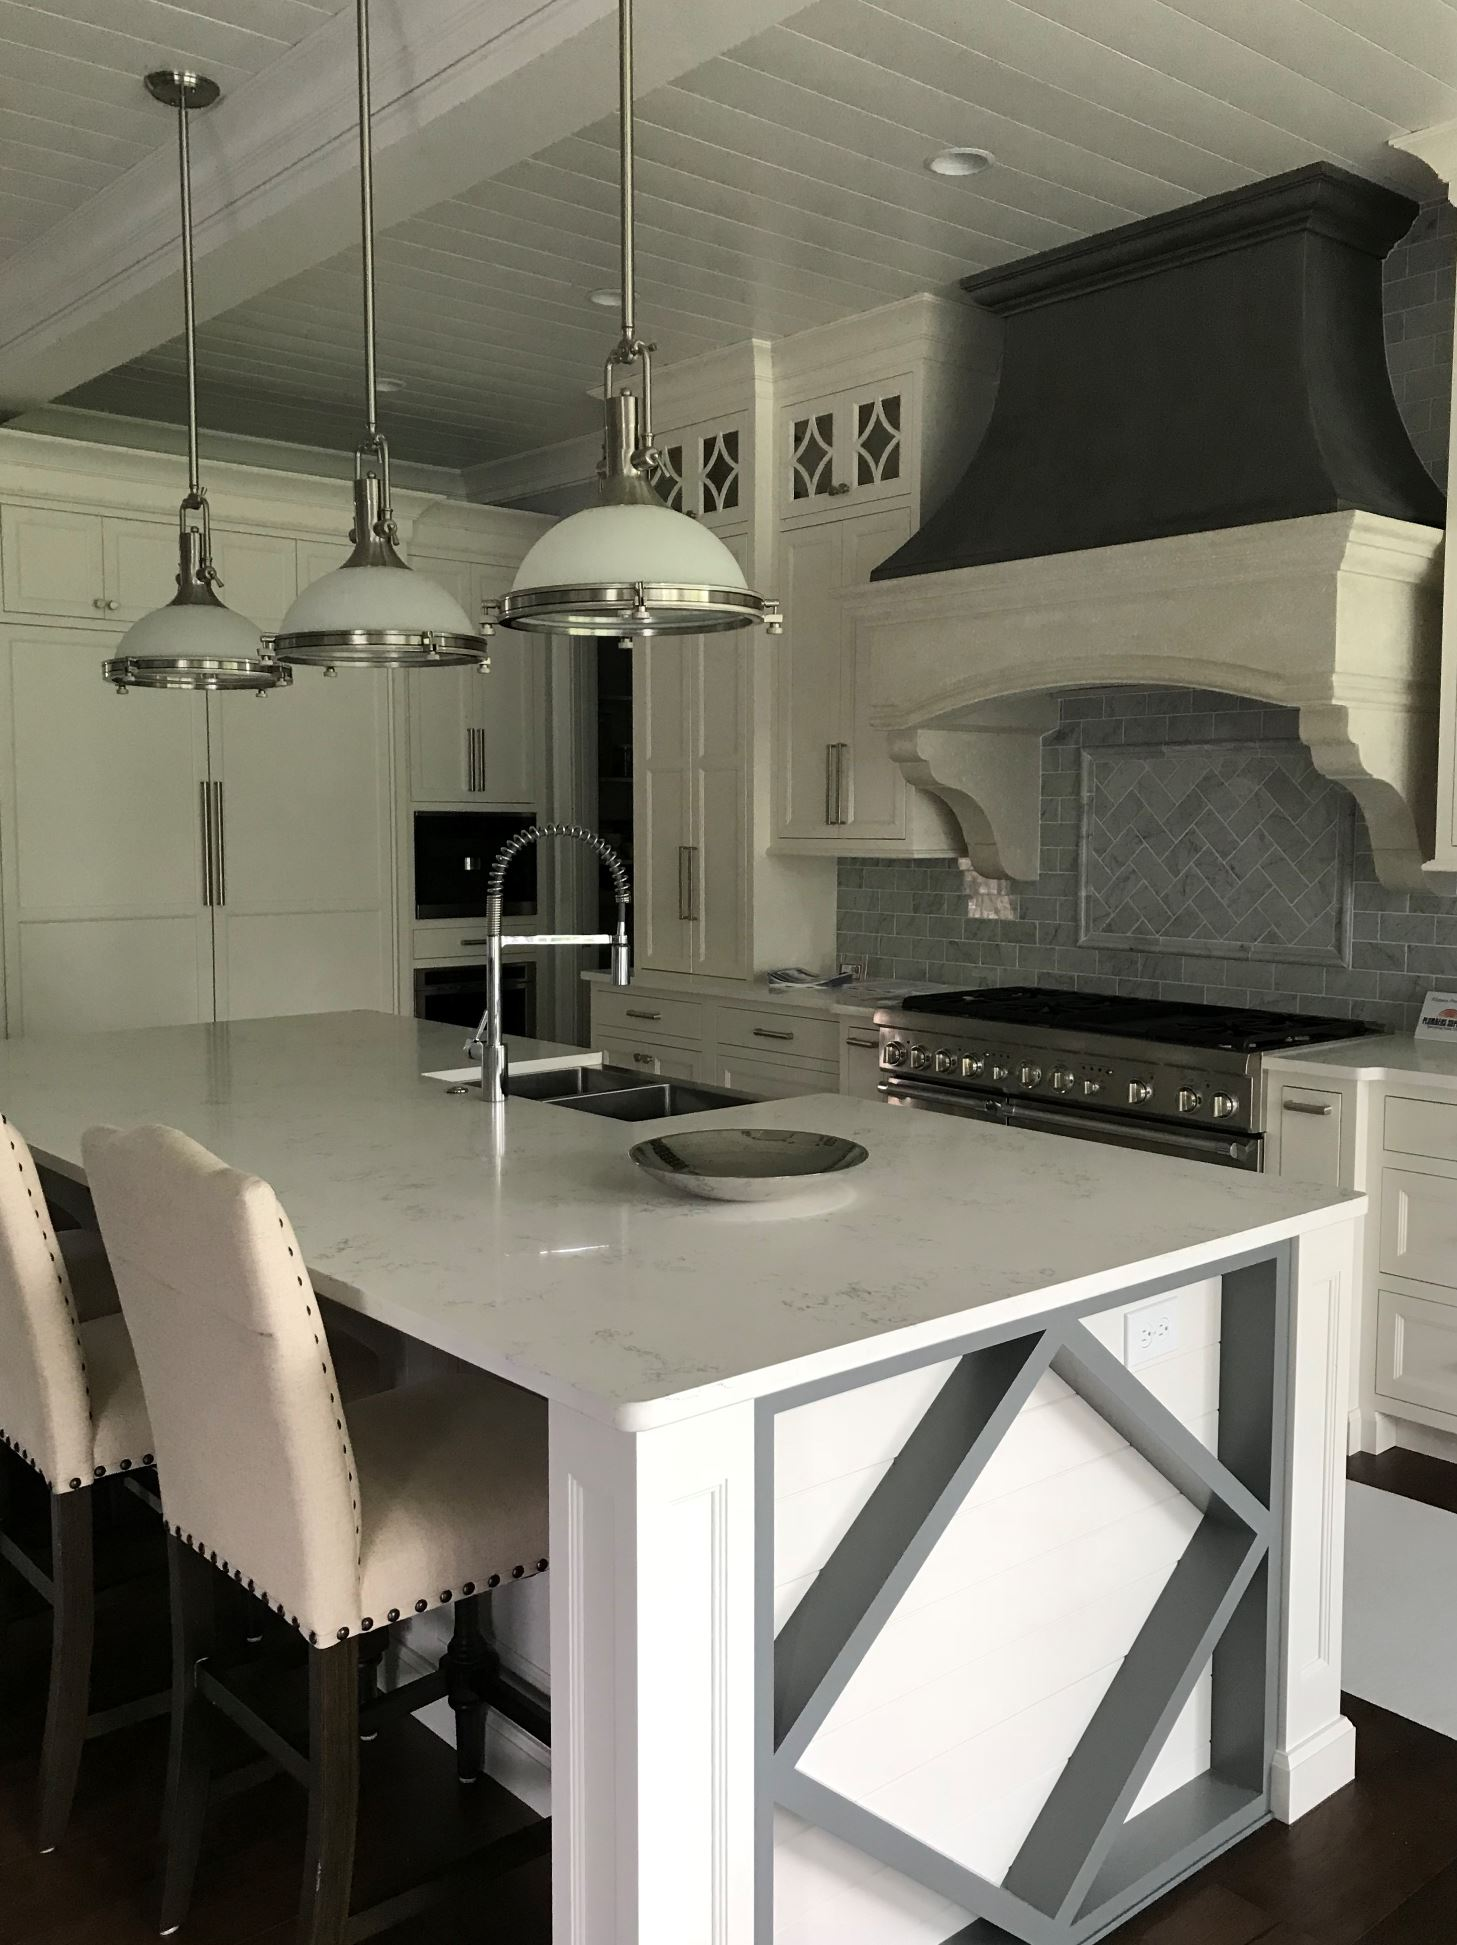 A recent rain storm caused a power outage, but that did not stop Jimmy Nash Homes from opening this impressive home for the tour!  If you would like to see a better photo of this fabulous kitchen Kitchen Concepts has it posted on their Instagram page @kitchenconceptsky